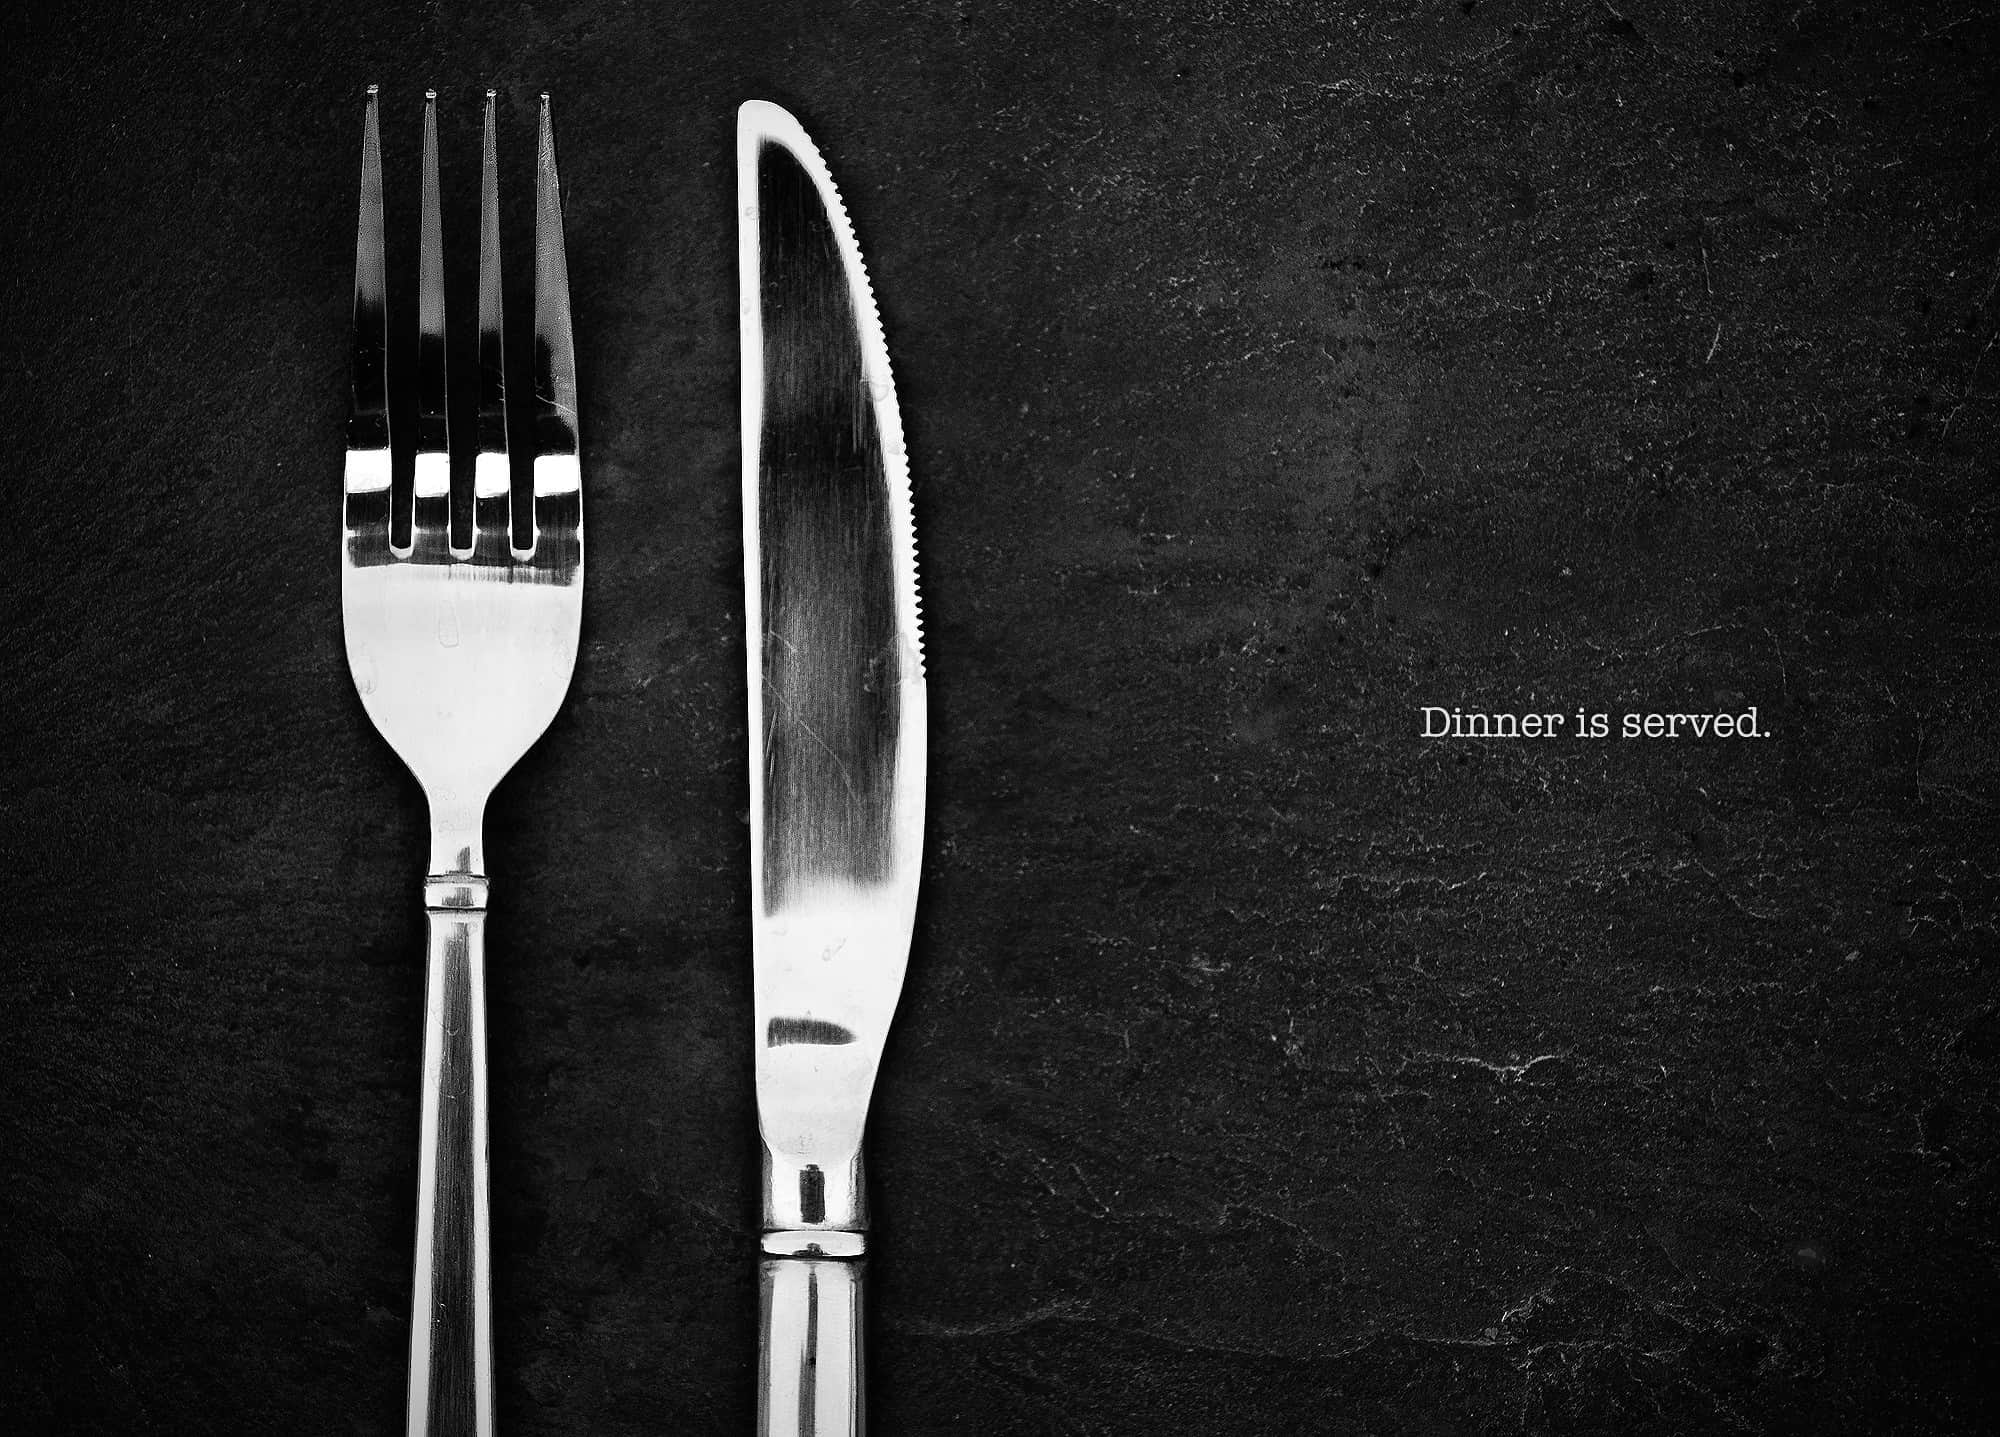 cutlery on black surface